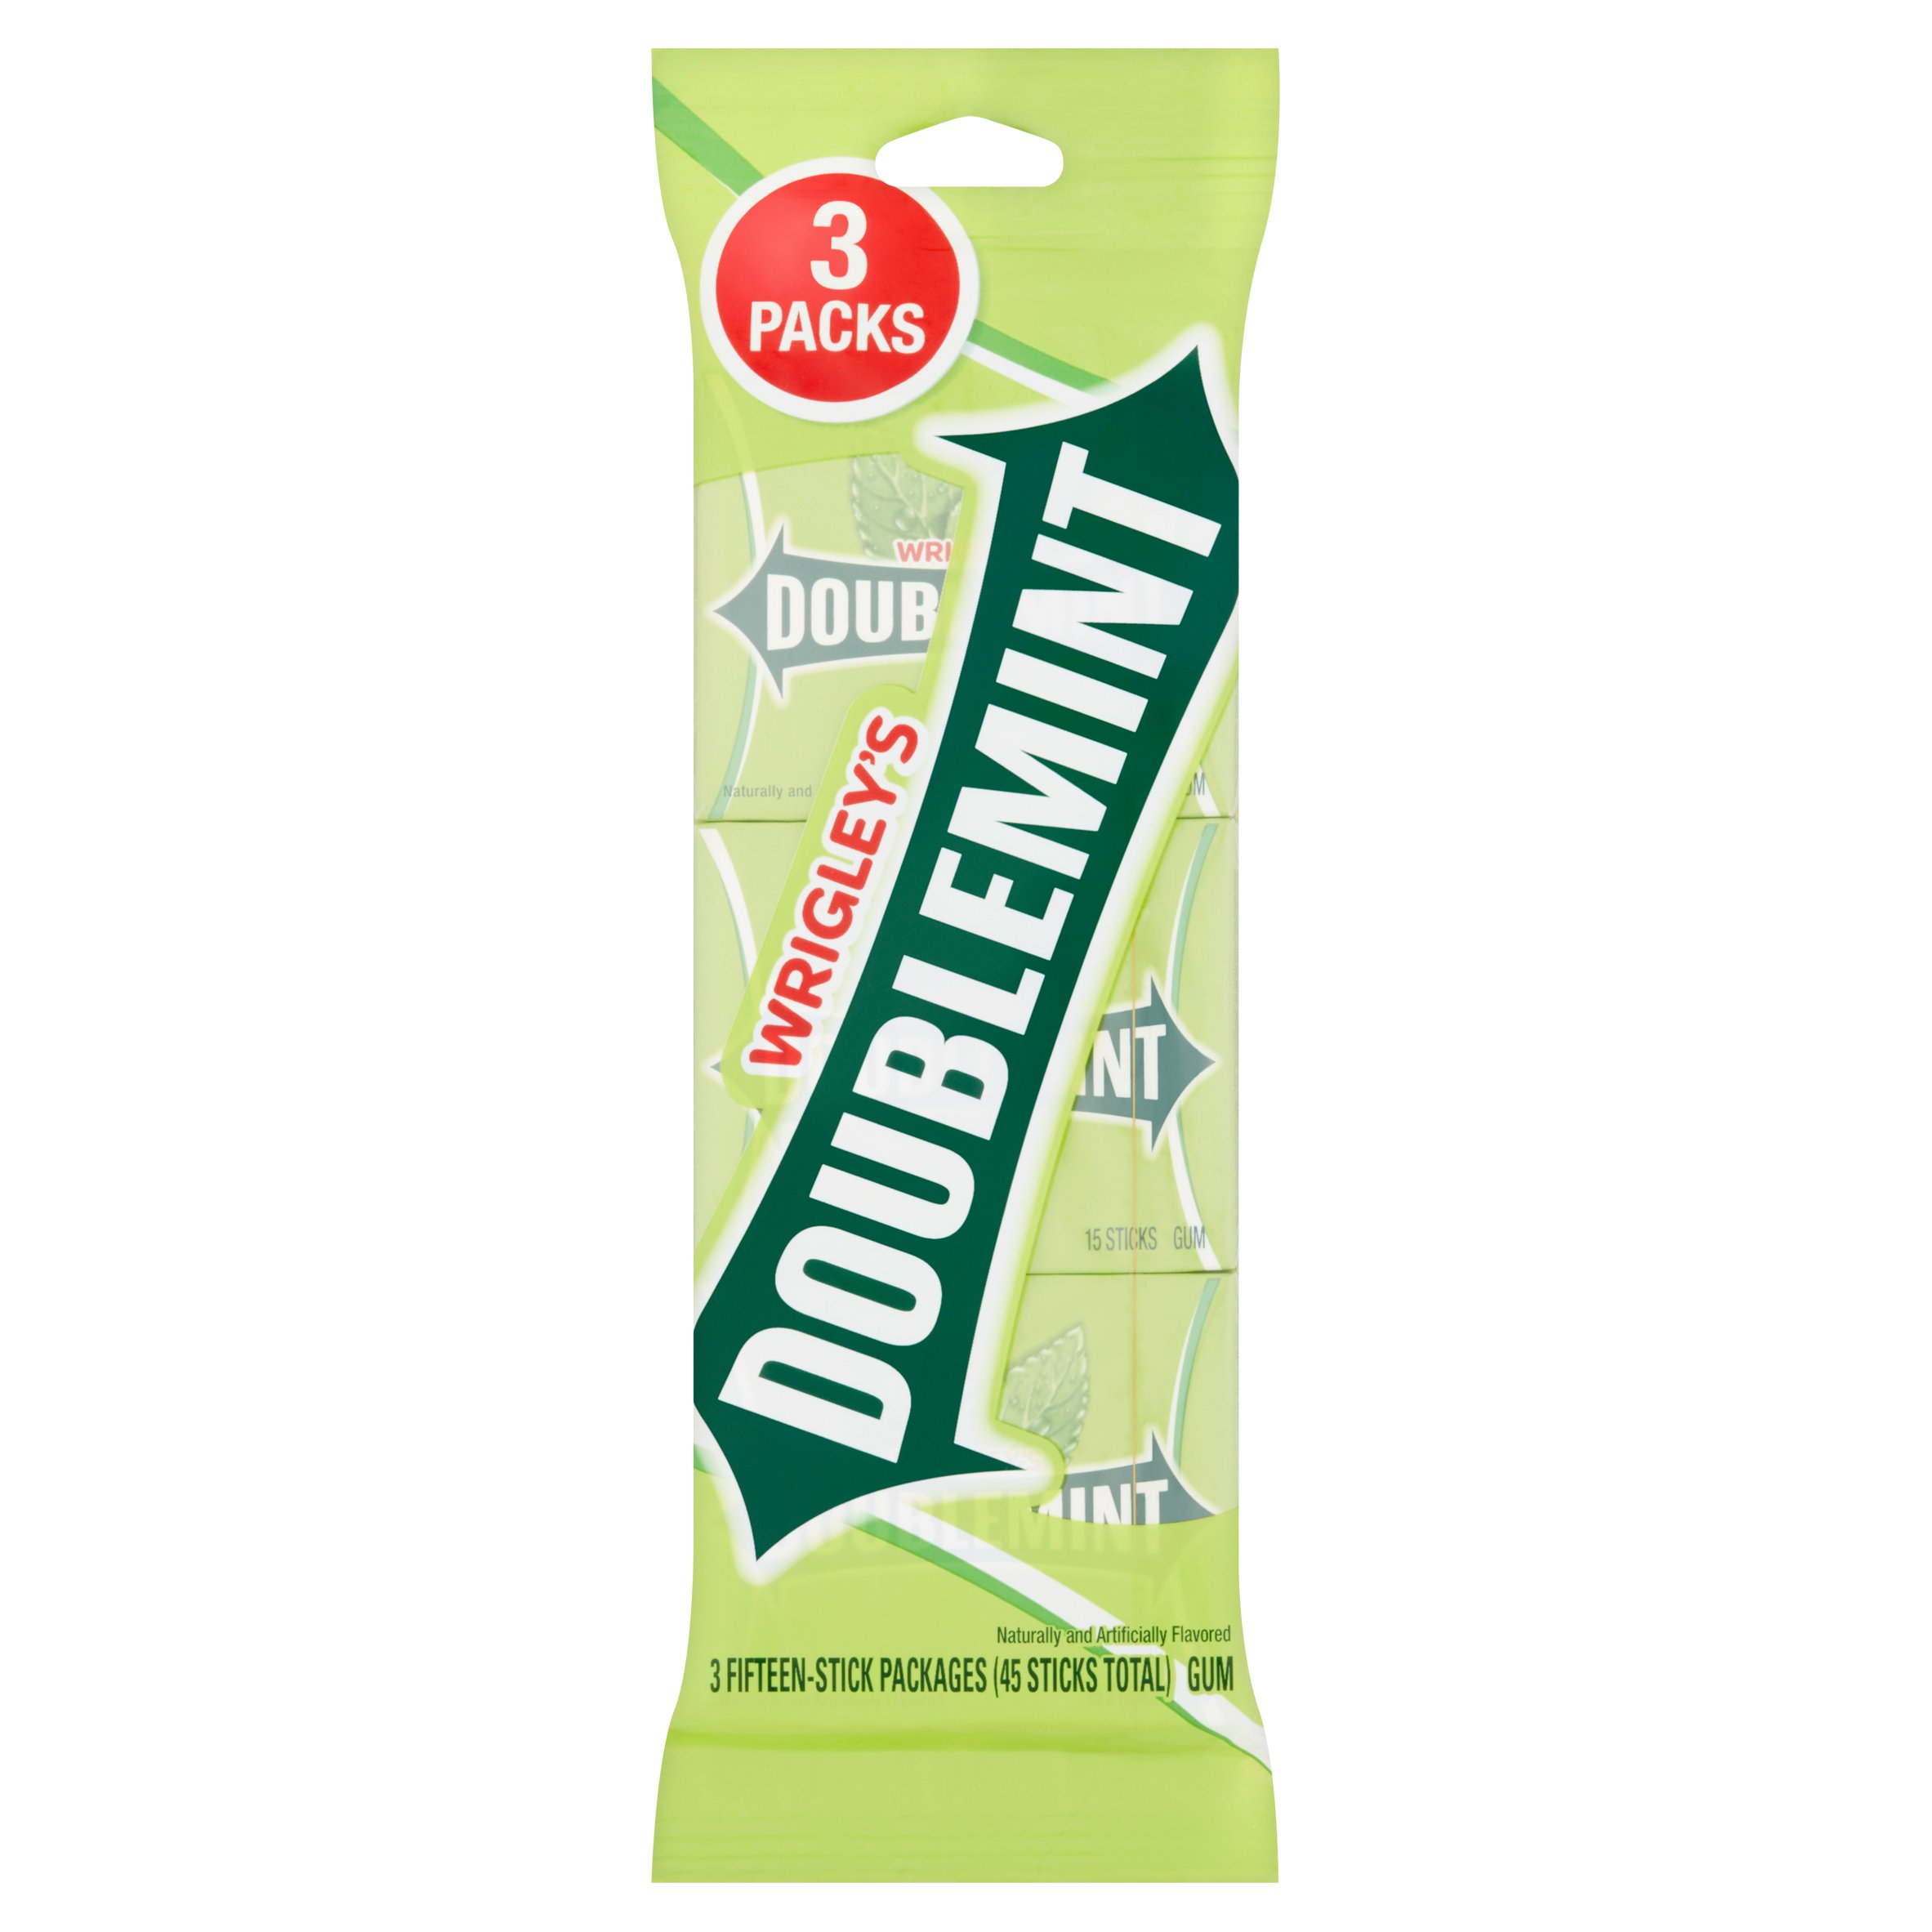 Doublemint Chewing Gum Multipack (3 packs total) by Wm. Wrigley Jr. Company